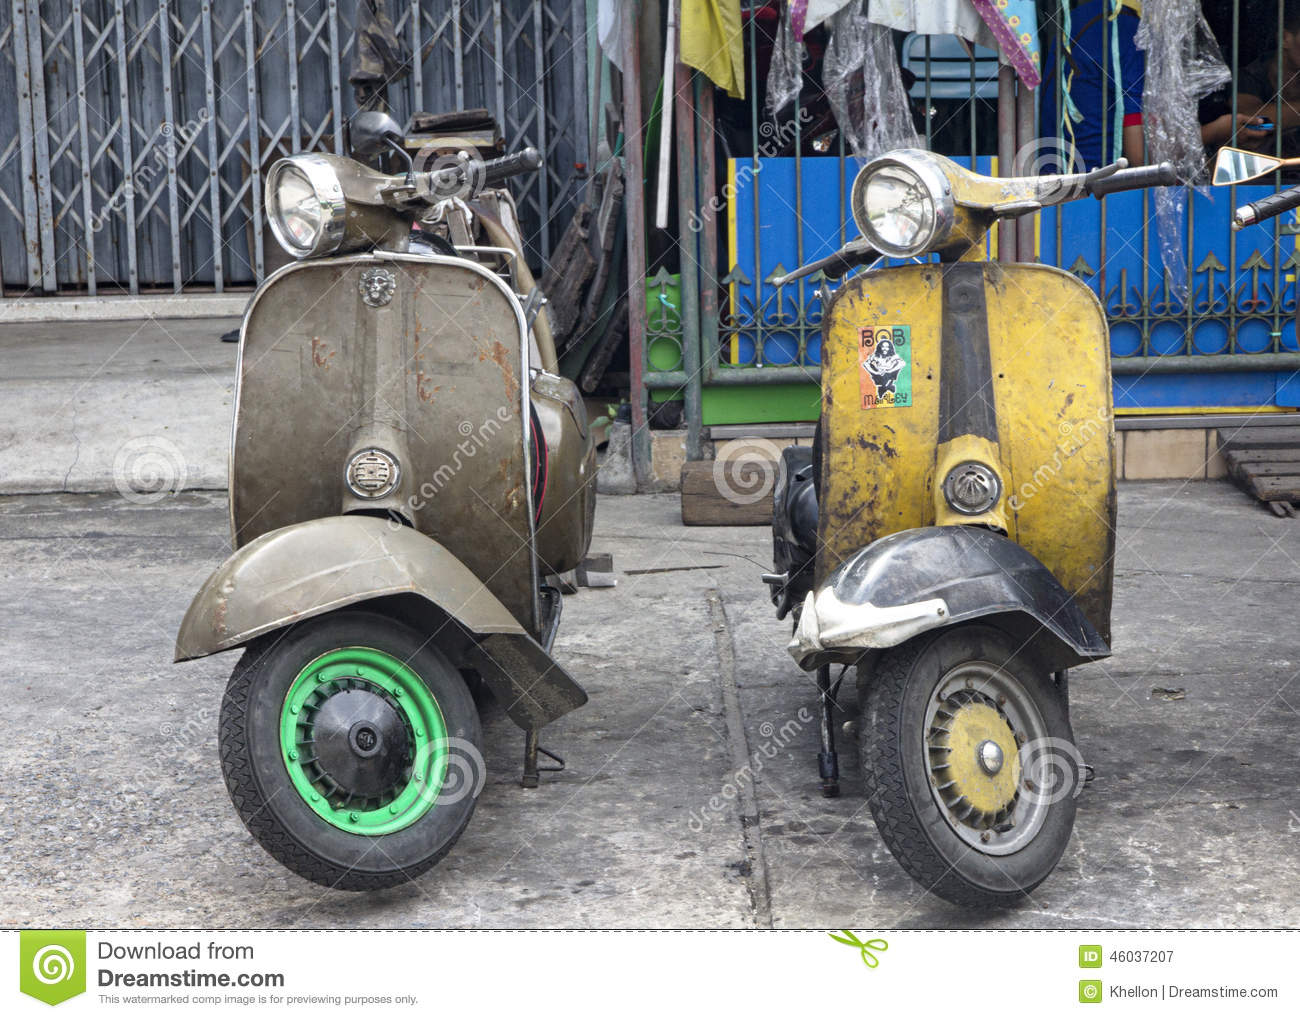 CLASSIC LAMBRETTA SCOOTERS FOR SALE - SCOOTERS